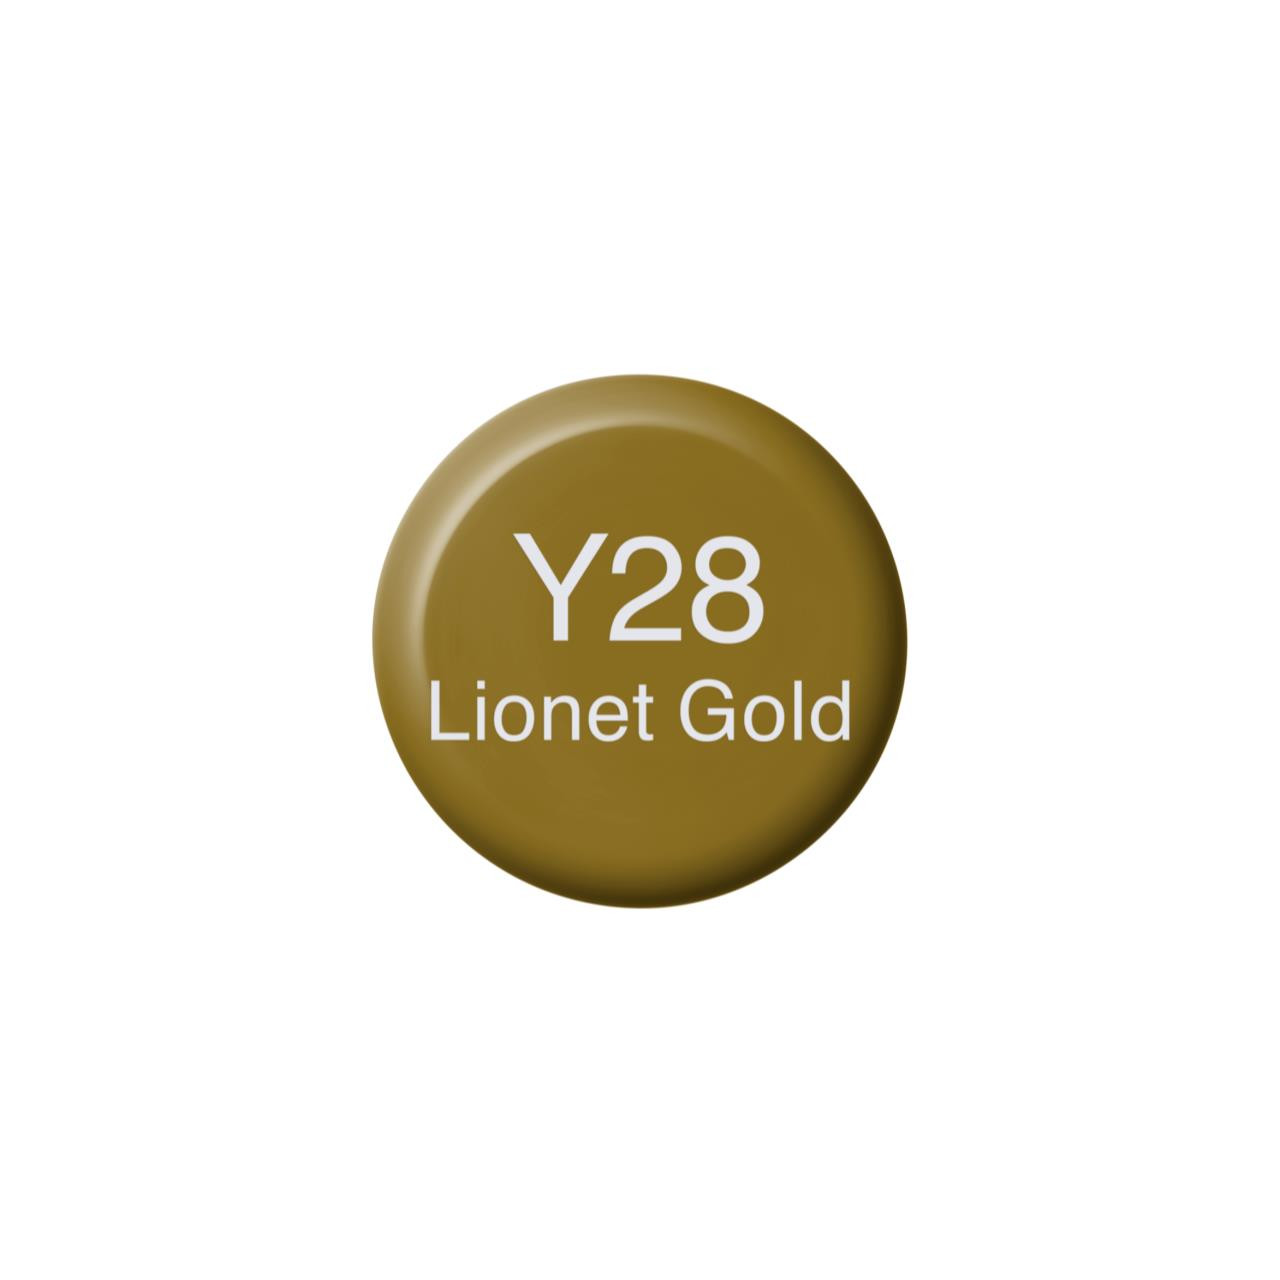 Y28 Lionet Gold, Copic Ink - 4511338058299